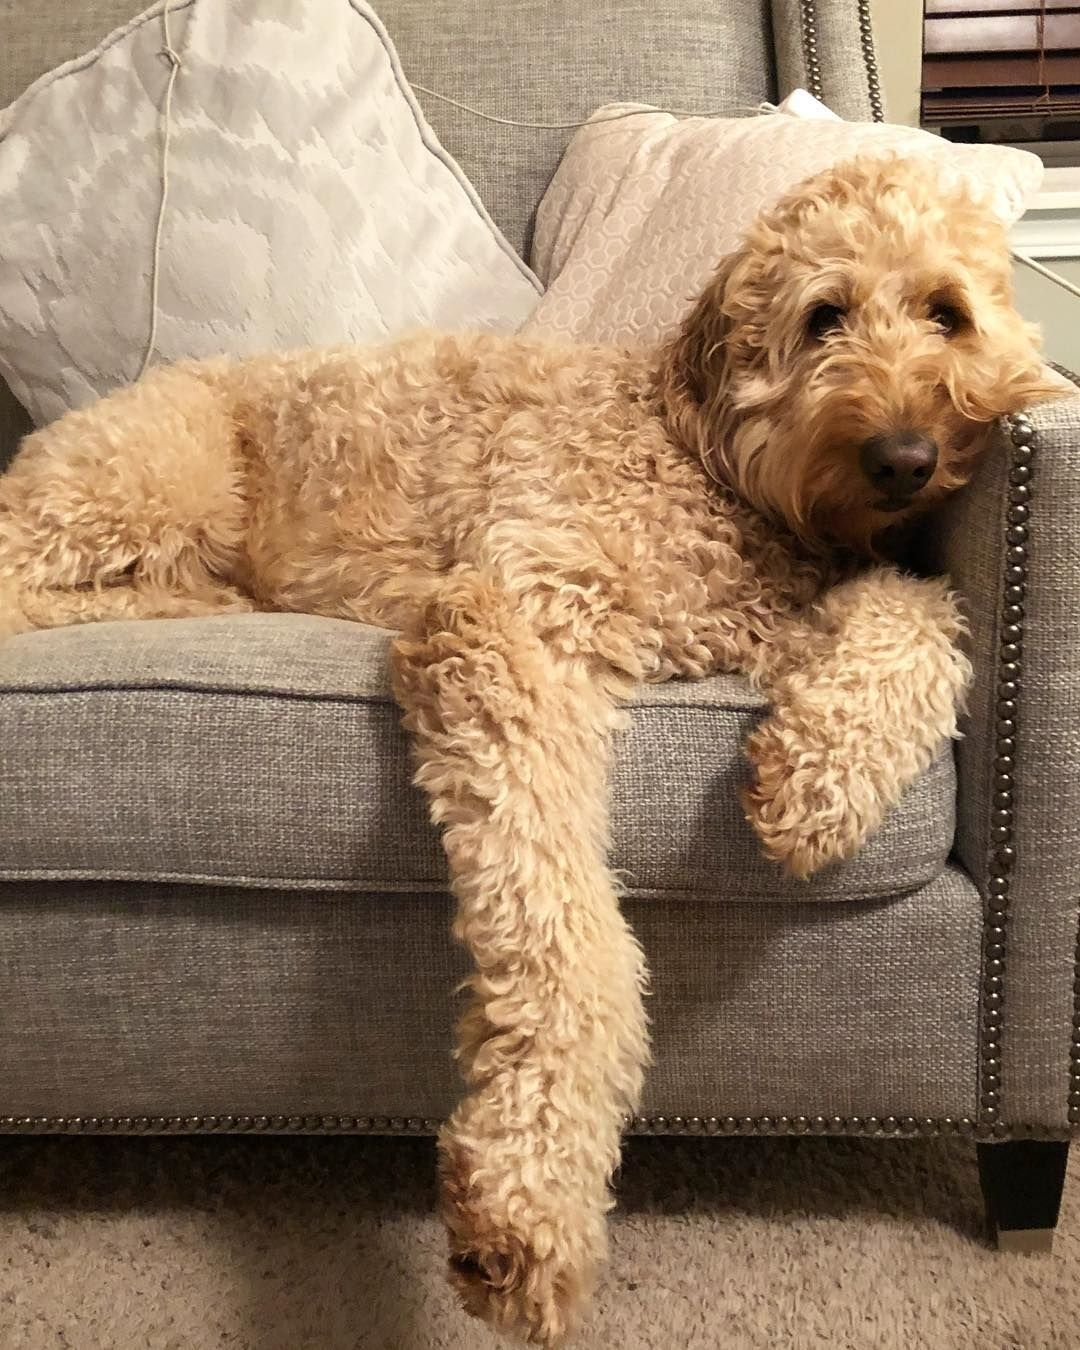 Labrador Retriever and Poodle Mix - The Complete Labradoodle Guide